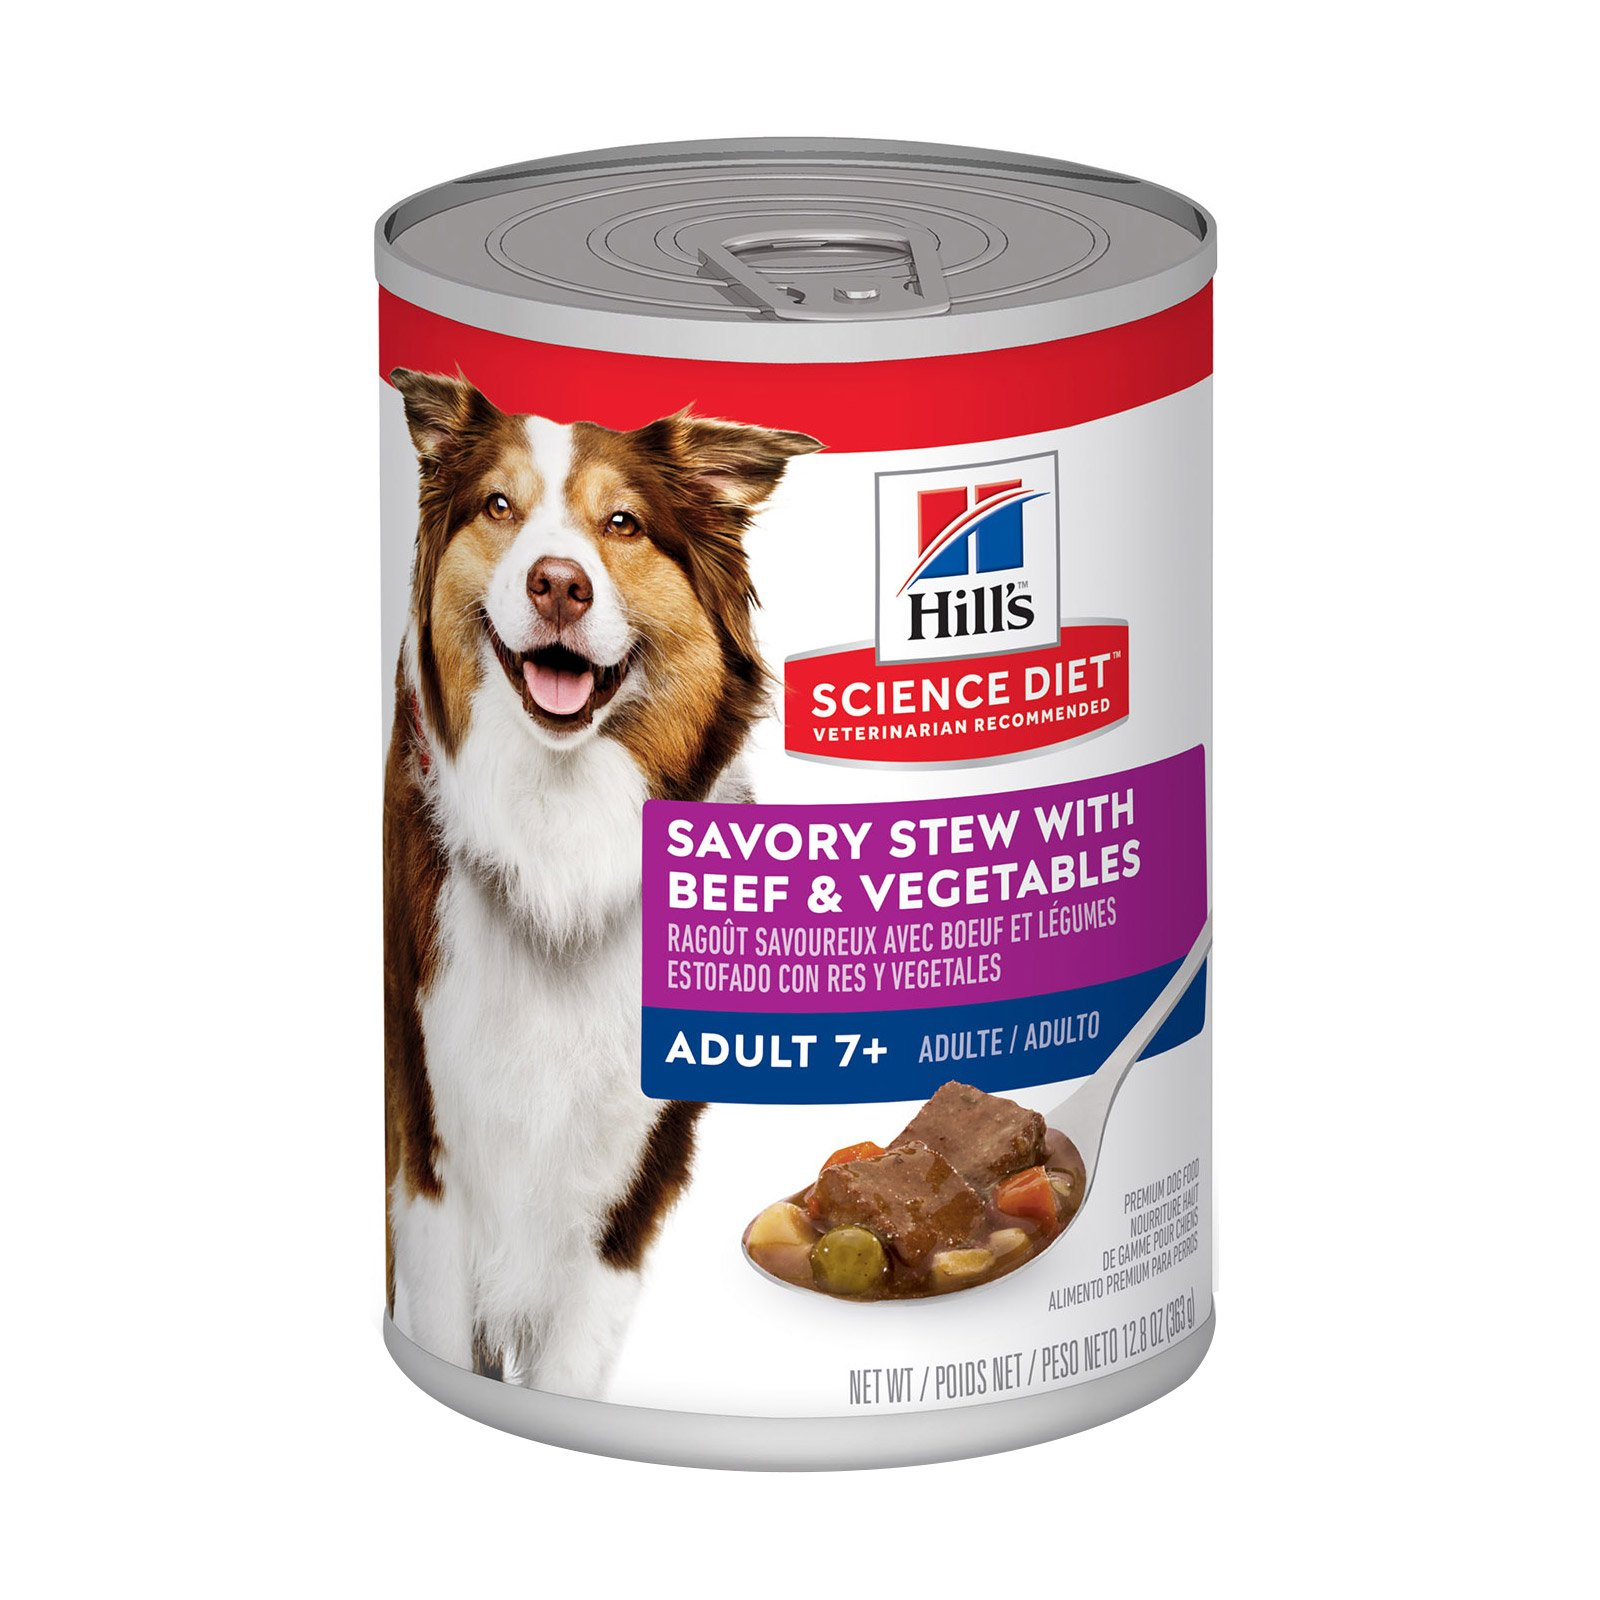 Hill's Science Diet Adult 7+ Savory Stew Beef & Vegetable Canned Dog Food 363 Gm